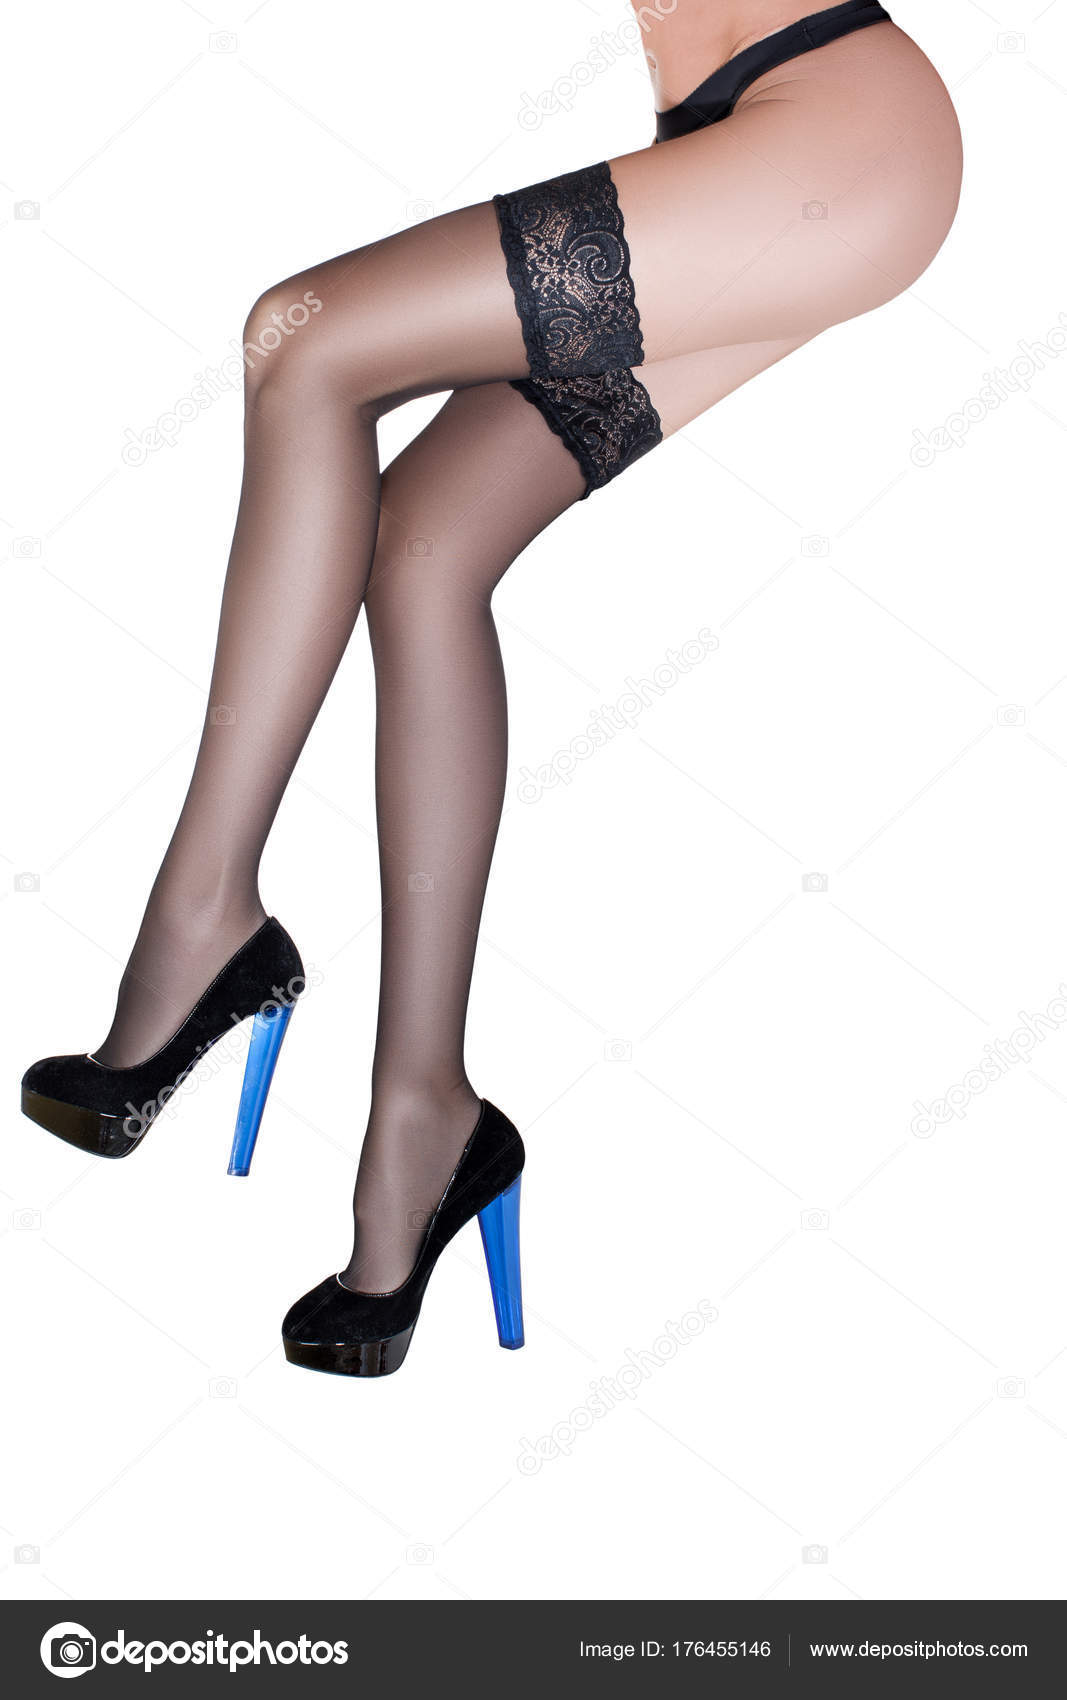 Pity, that Sexy legs black stockings